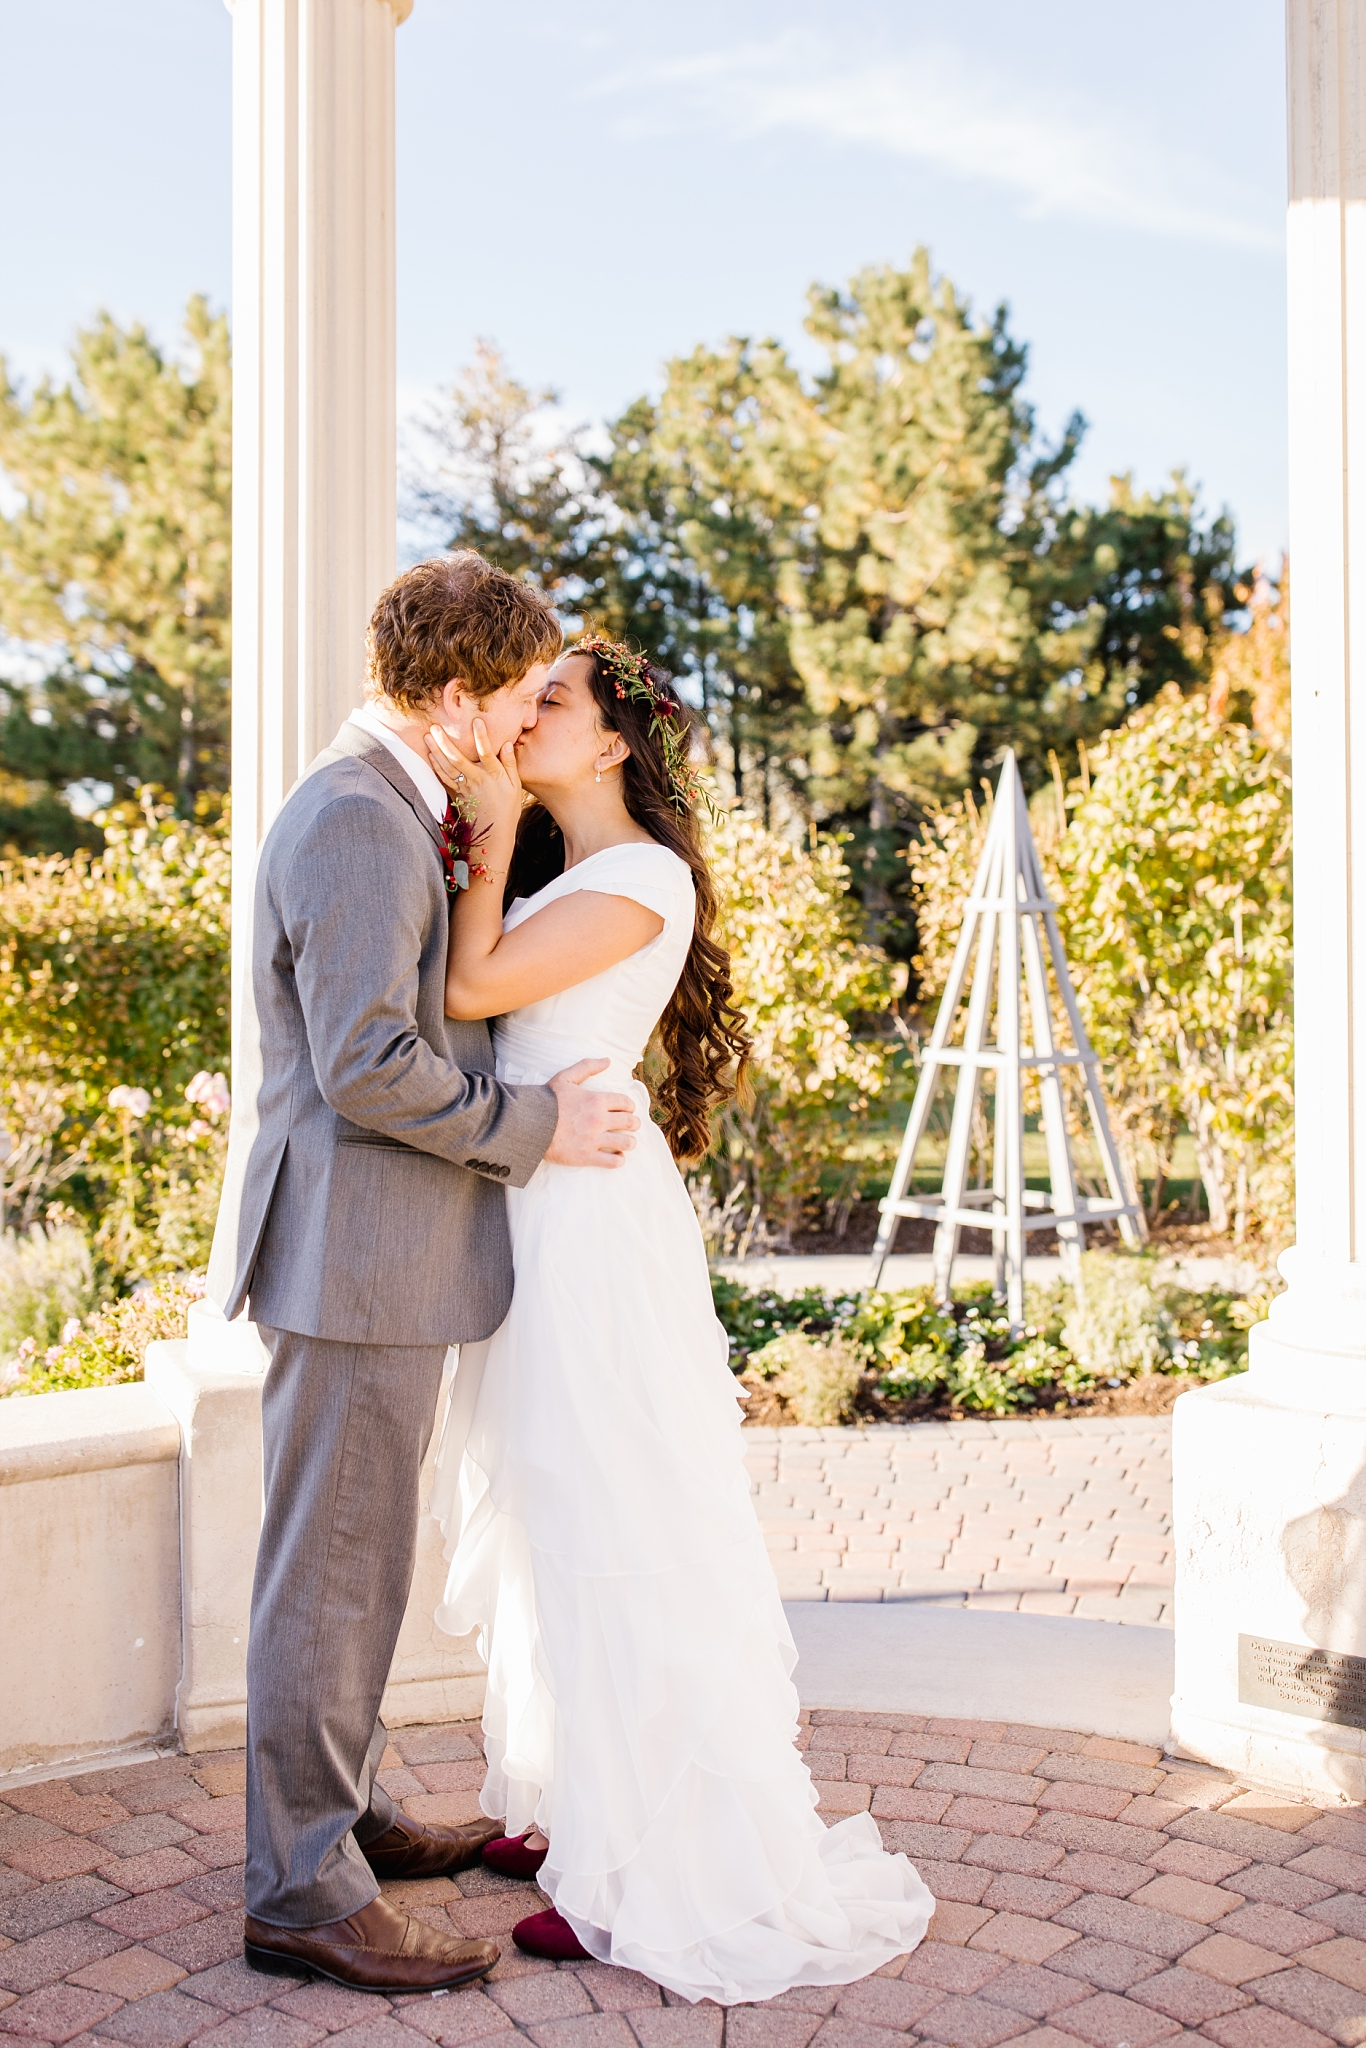 JB-Bridals-59_Lizzie-B-Imagery-Utah-Wedding-Photographer-Thanksgiving-Point-Ashton-Gardens-Lehi-Utah.jpg